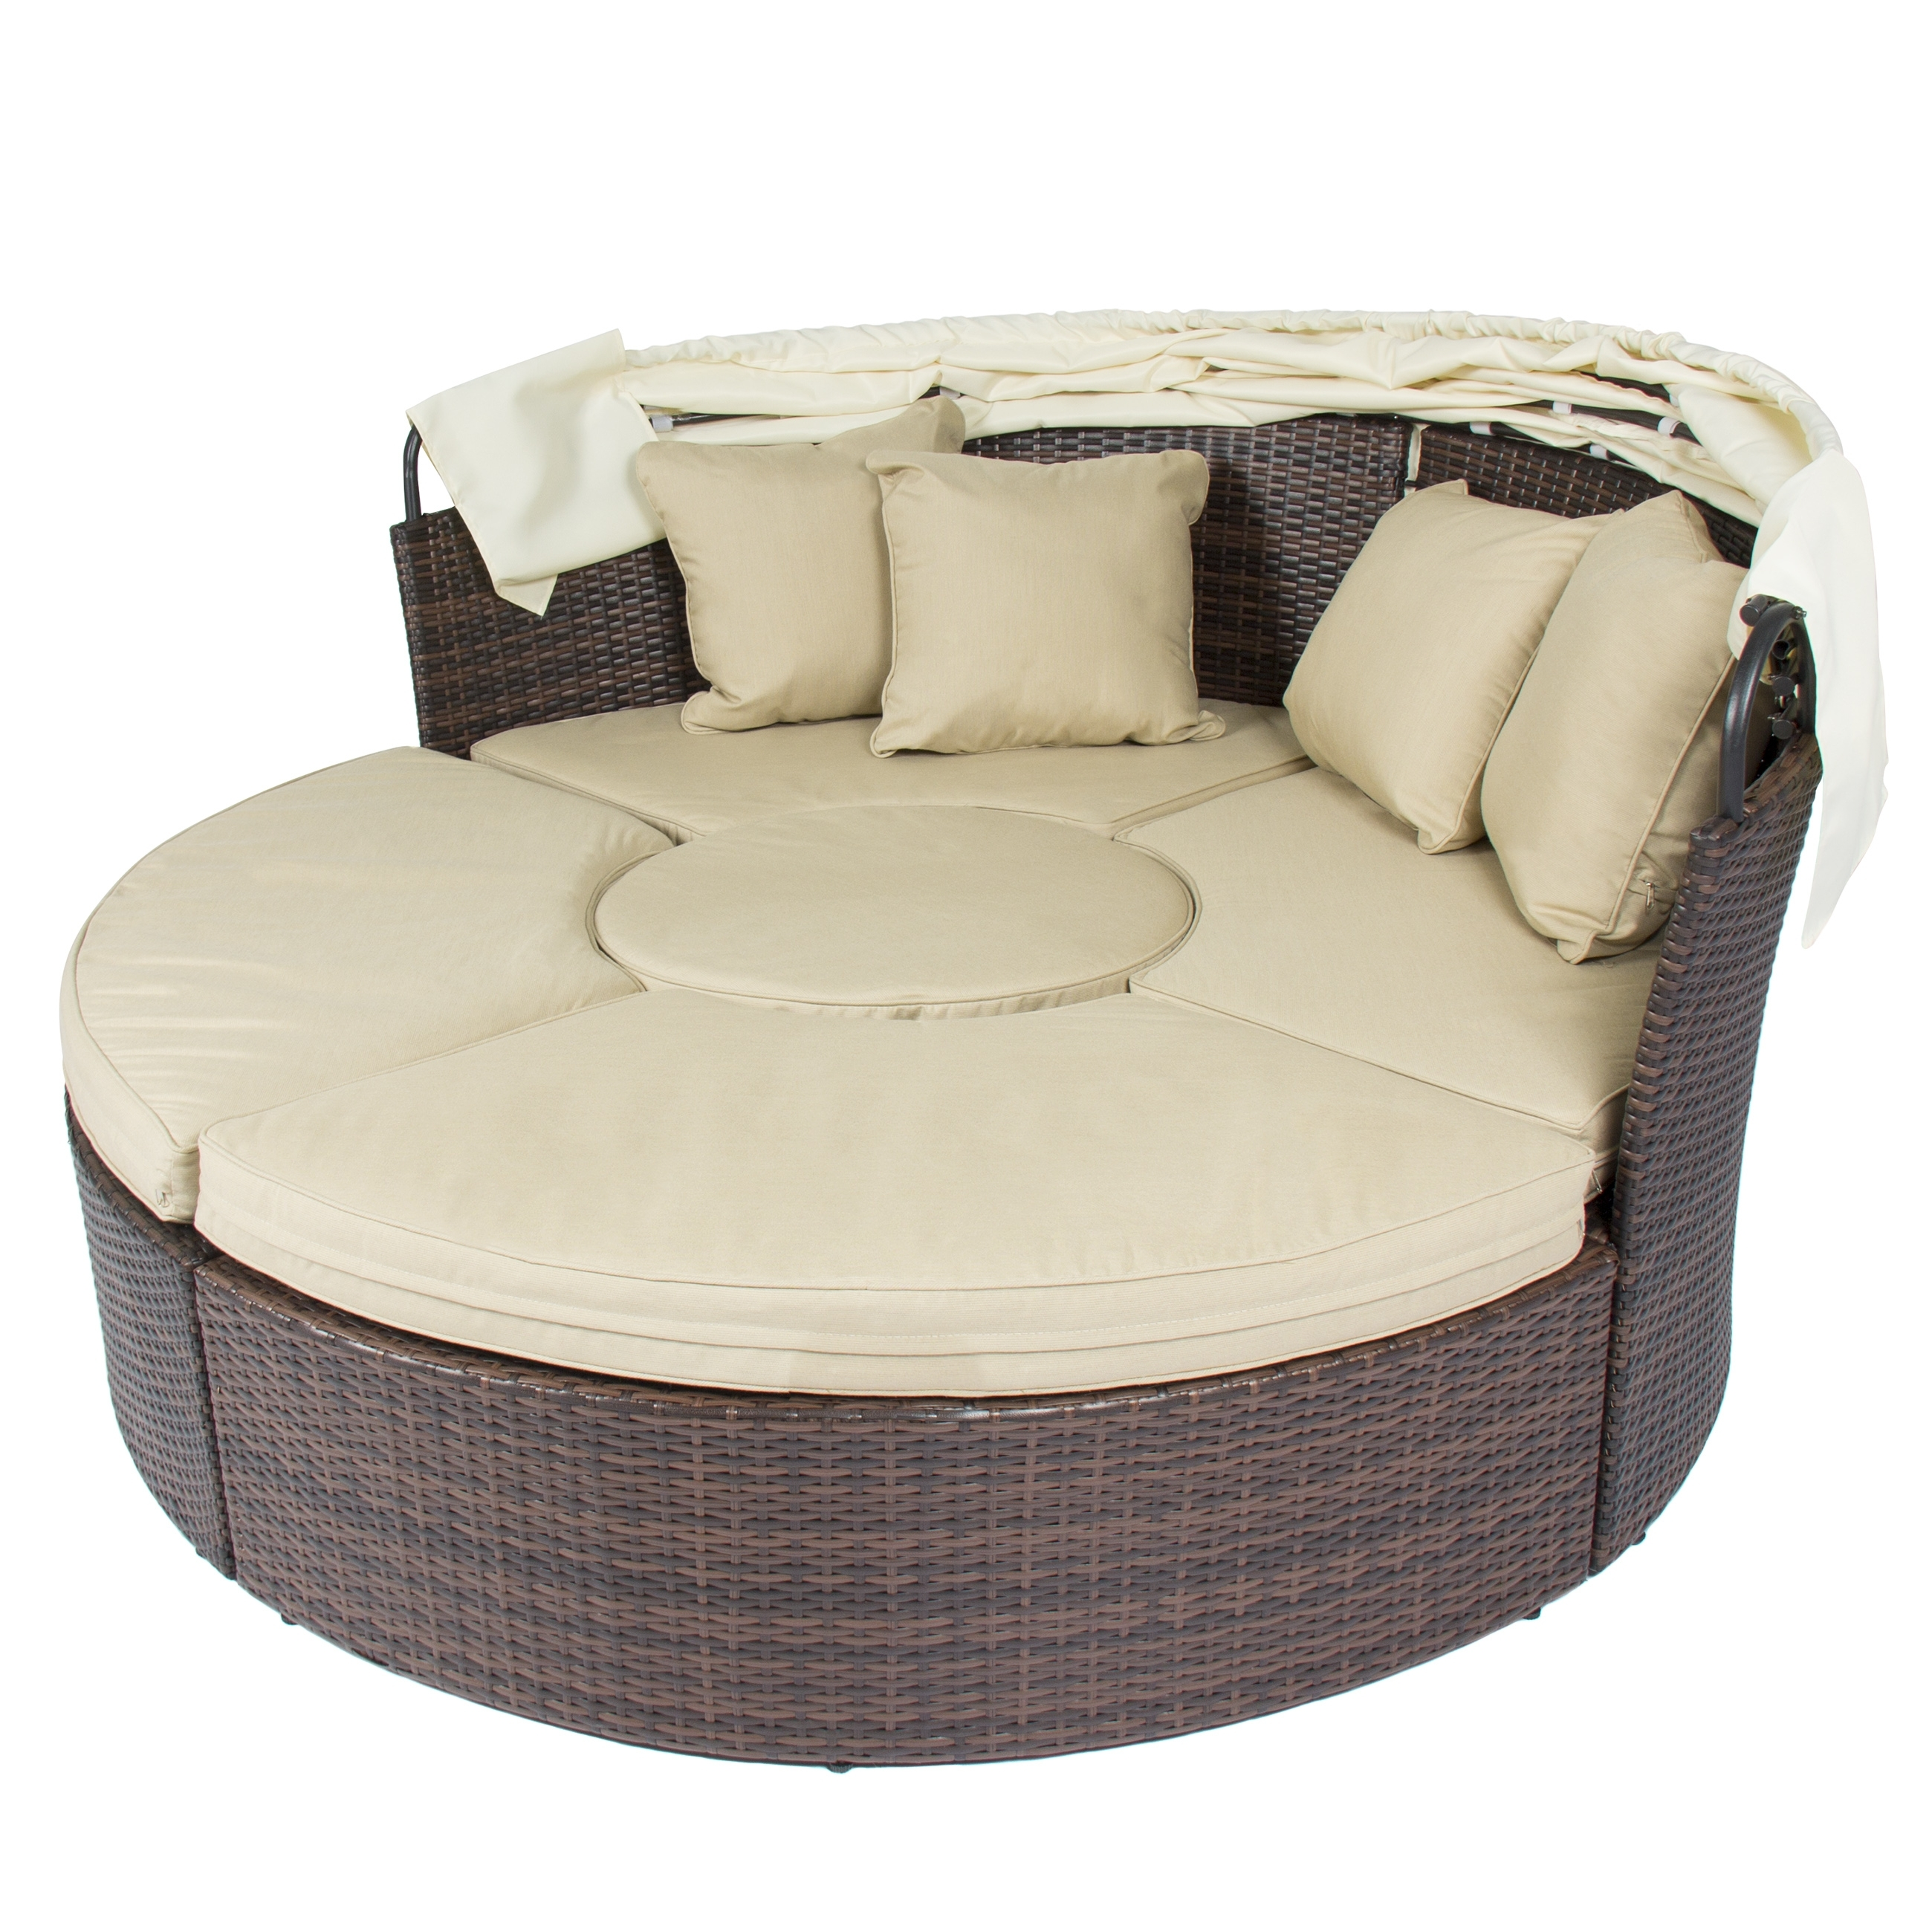 Newest Outdoor Patio Sofa Furniture Round Retractable Canopy Daybed Brown In Outdoor Sofa Chairs (View 9 of 20)